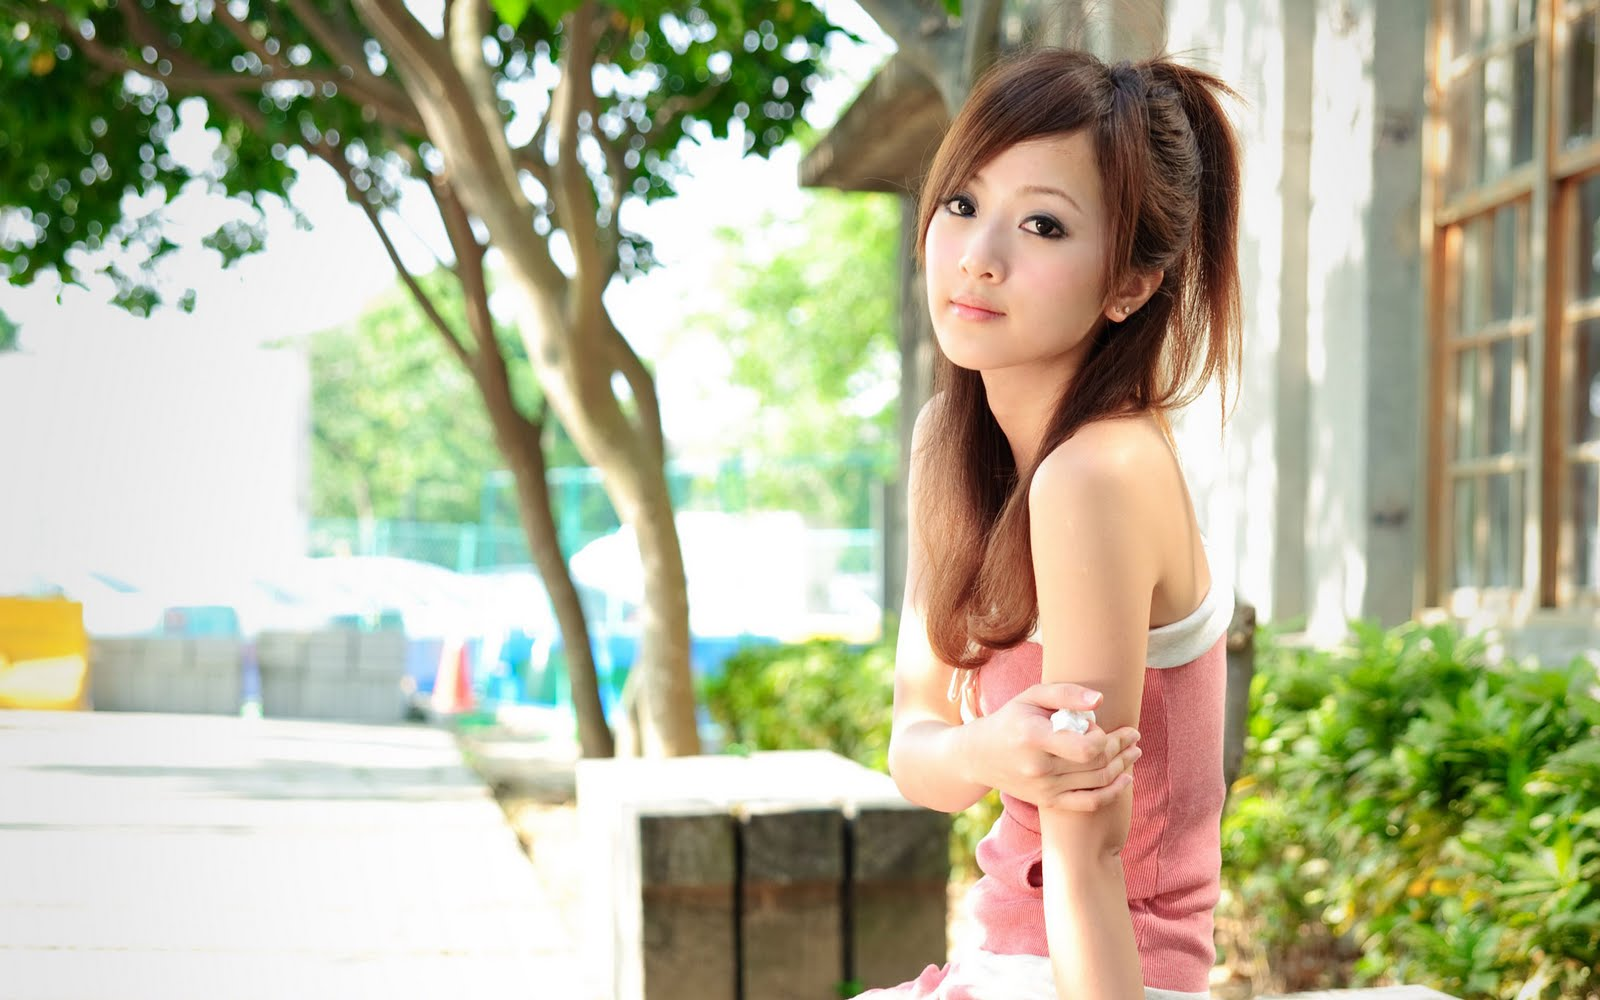 50 asian girls wallpaper hd desktop on wallpapersafari - Gir desktop wallpaper ...